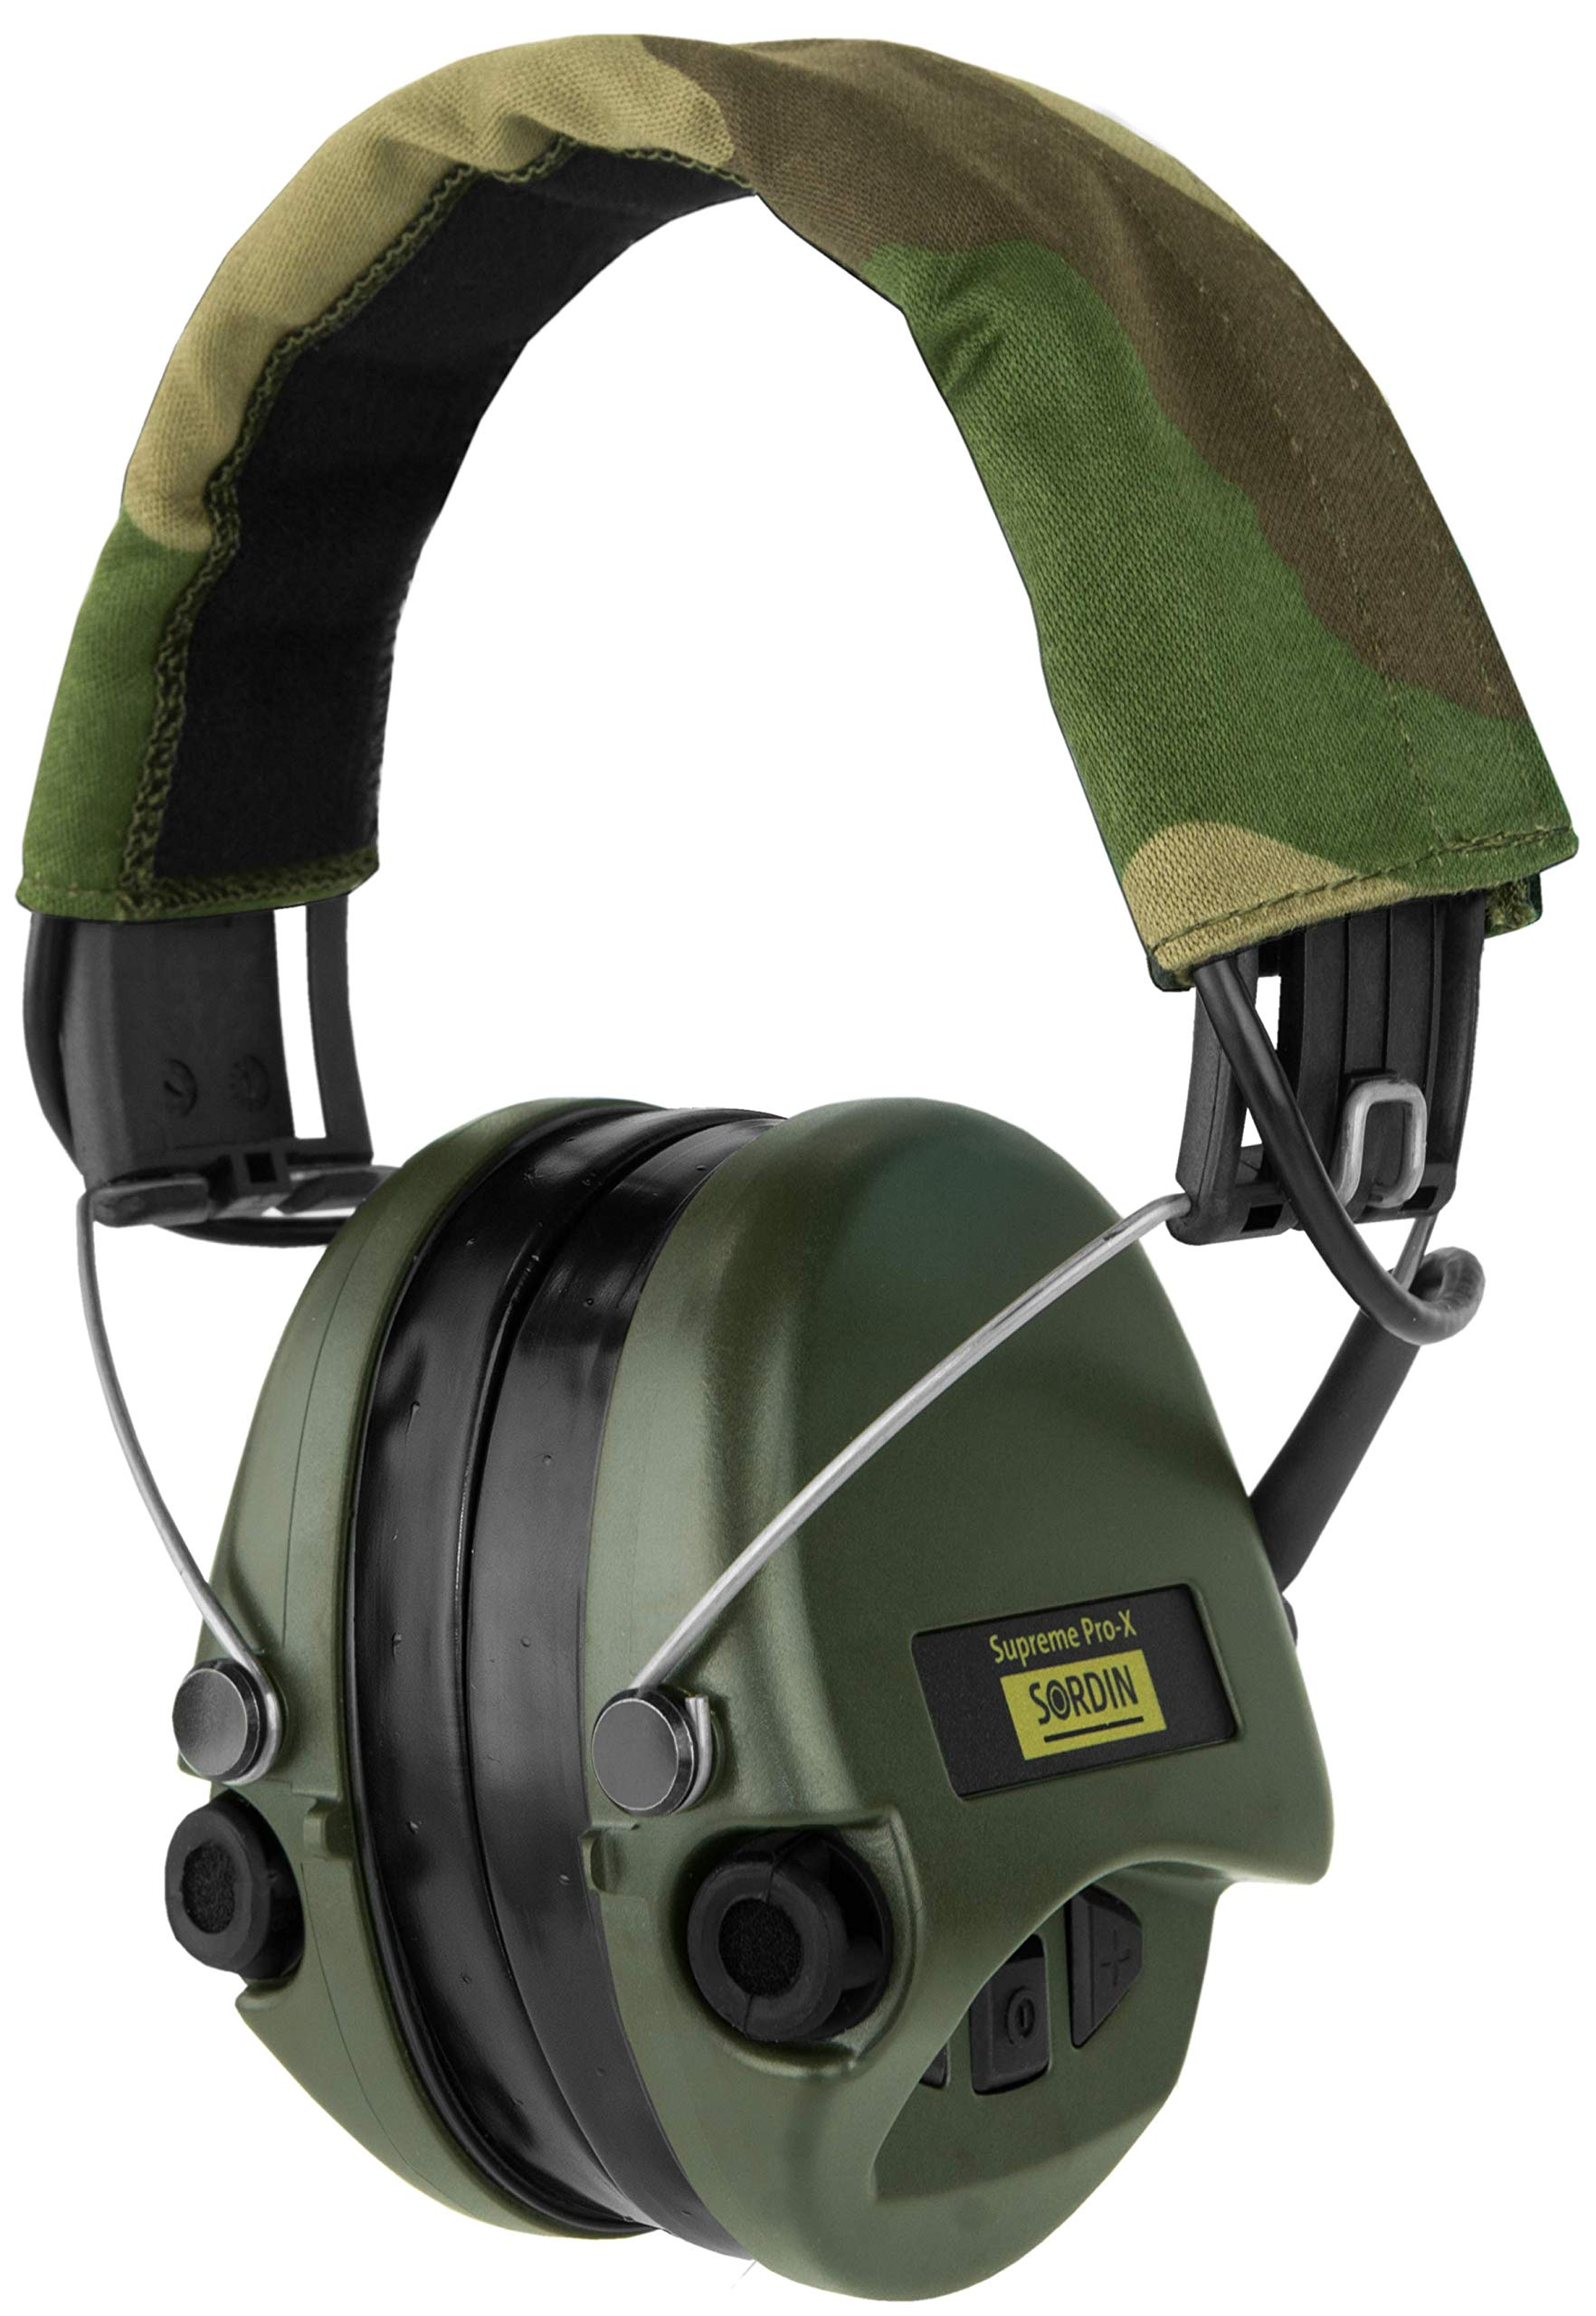 Sordin Supreme PRO X, Noise Reduction Active Safety Ear Muffs, Gel Seals, Adjustable Hearing Protection for Shooting, Hunting, Work, Camo Canvas Headband, Green Cups